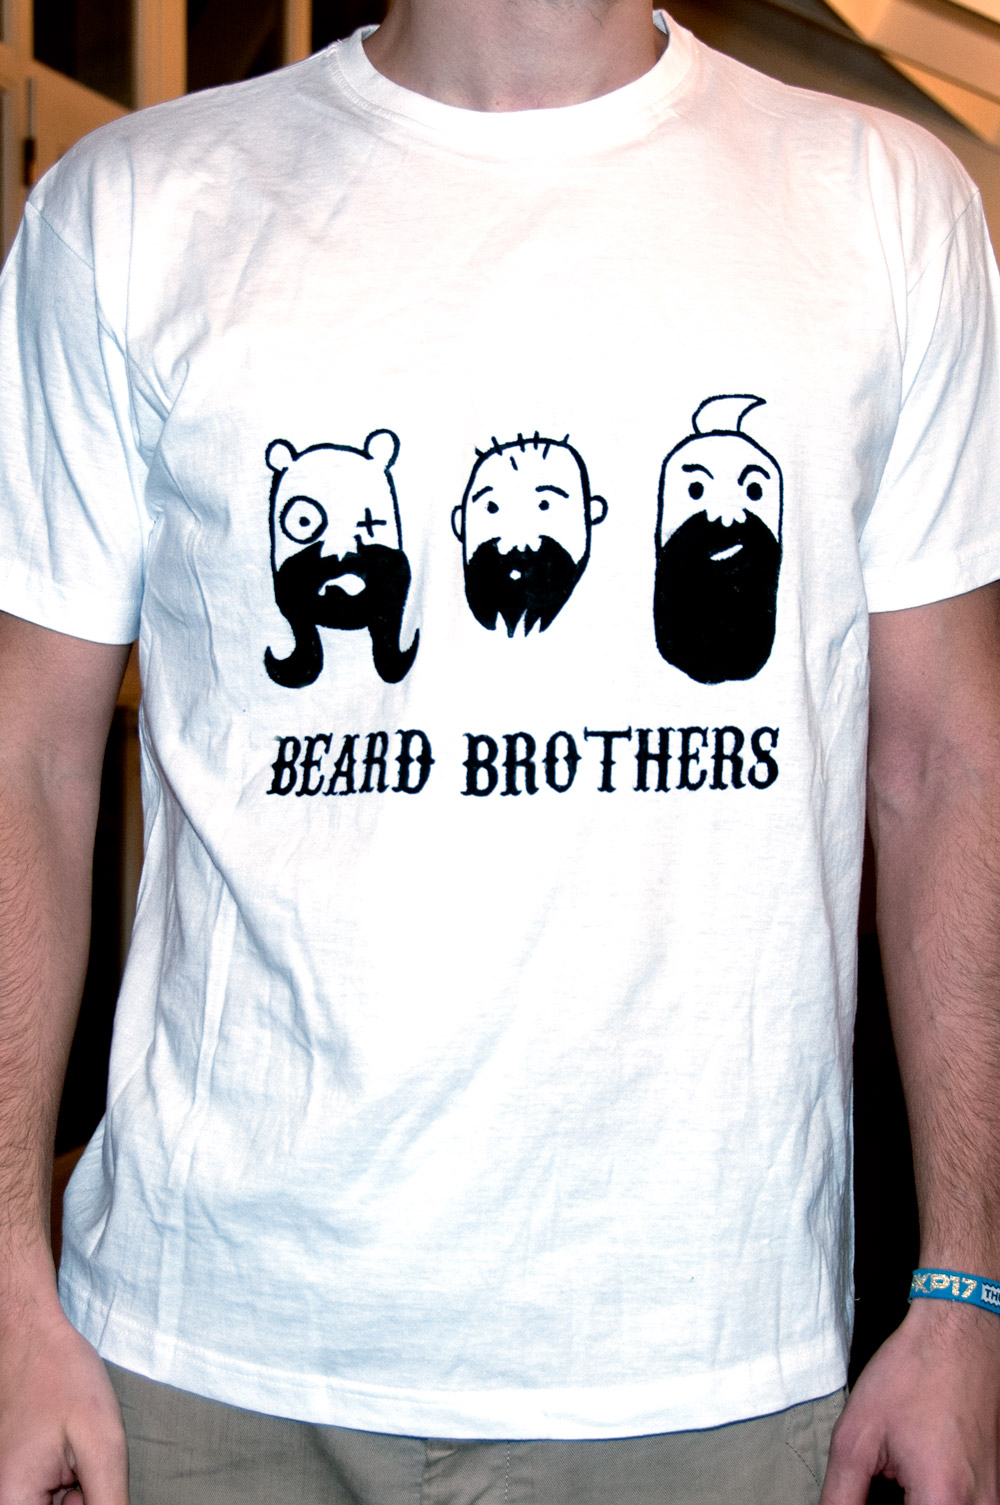 beard brothers t-shirt